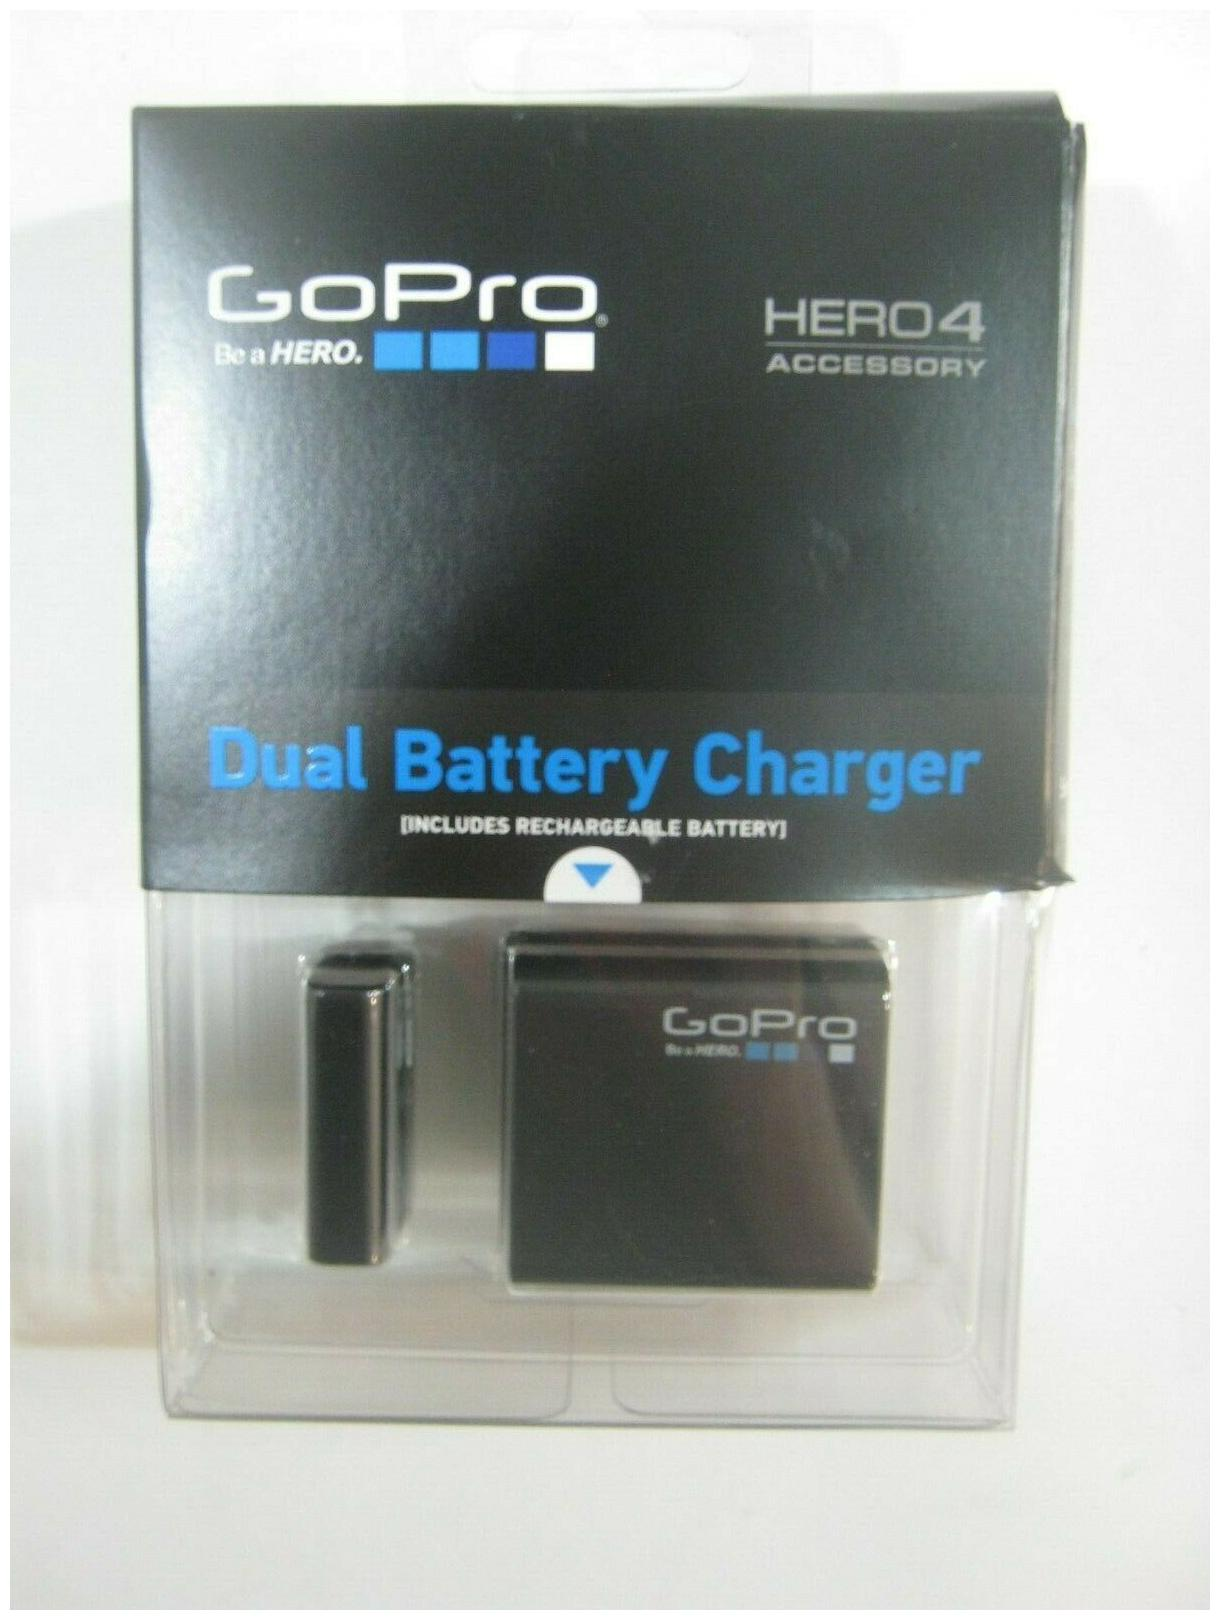 for HERO4 Black//HERO4 Silver GoPro OFFICIAL ACCESSORY Battery GoPro Dual Battery Charger